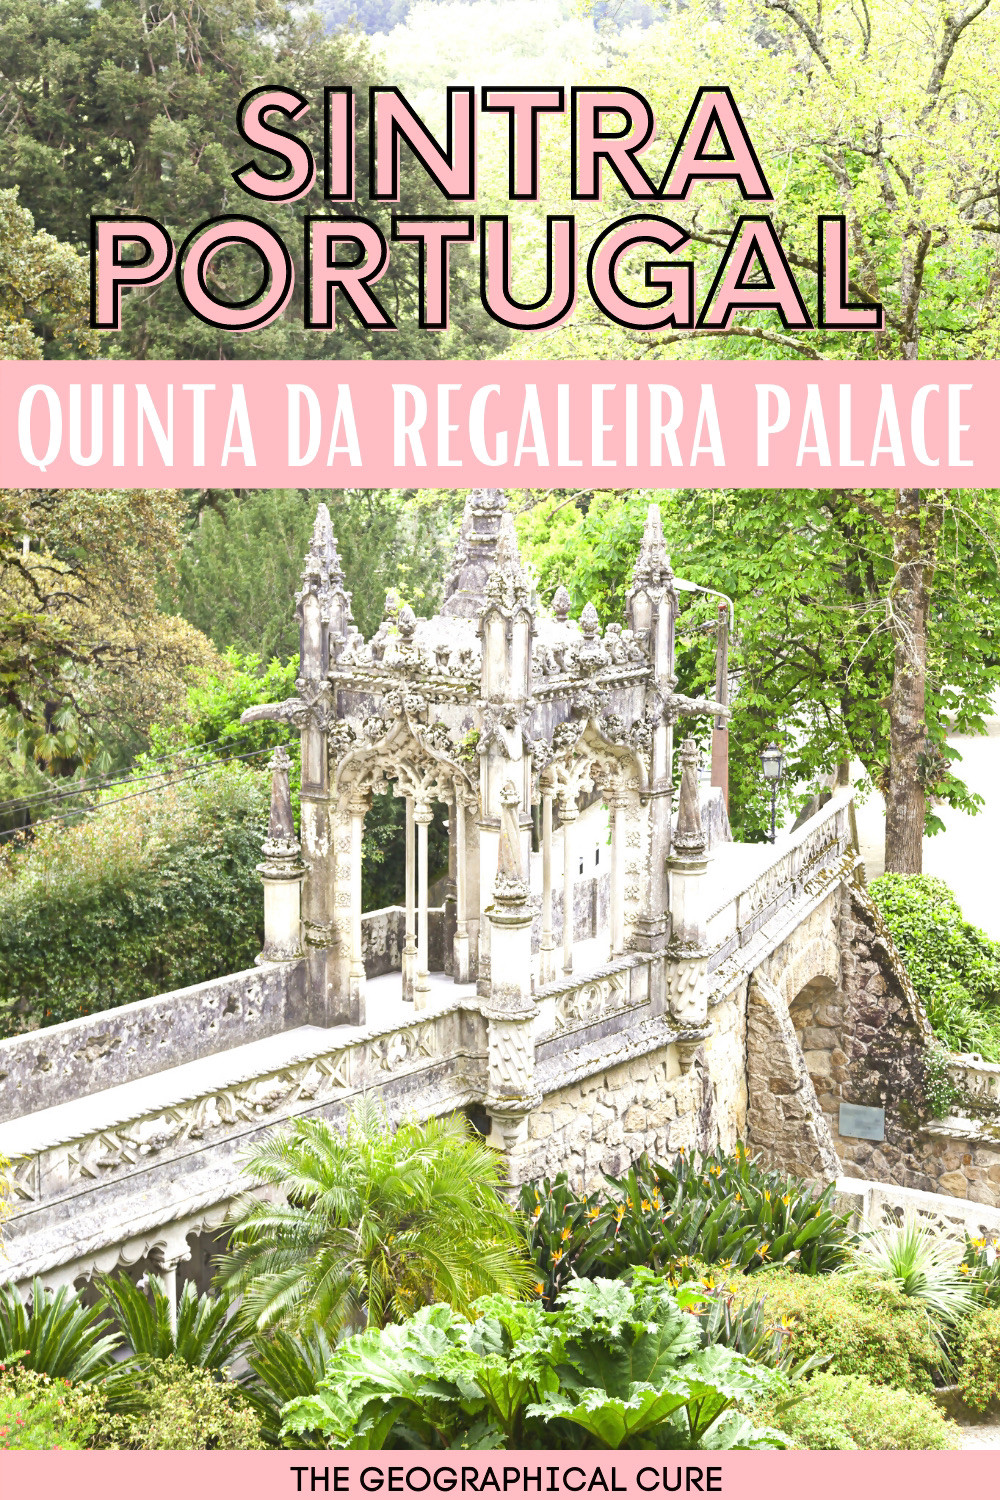 ultimate guide to Quinta da Regaleira in Sintra, a must see monument in Portugal